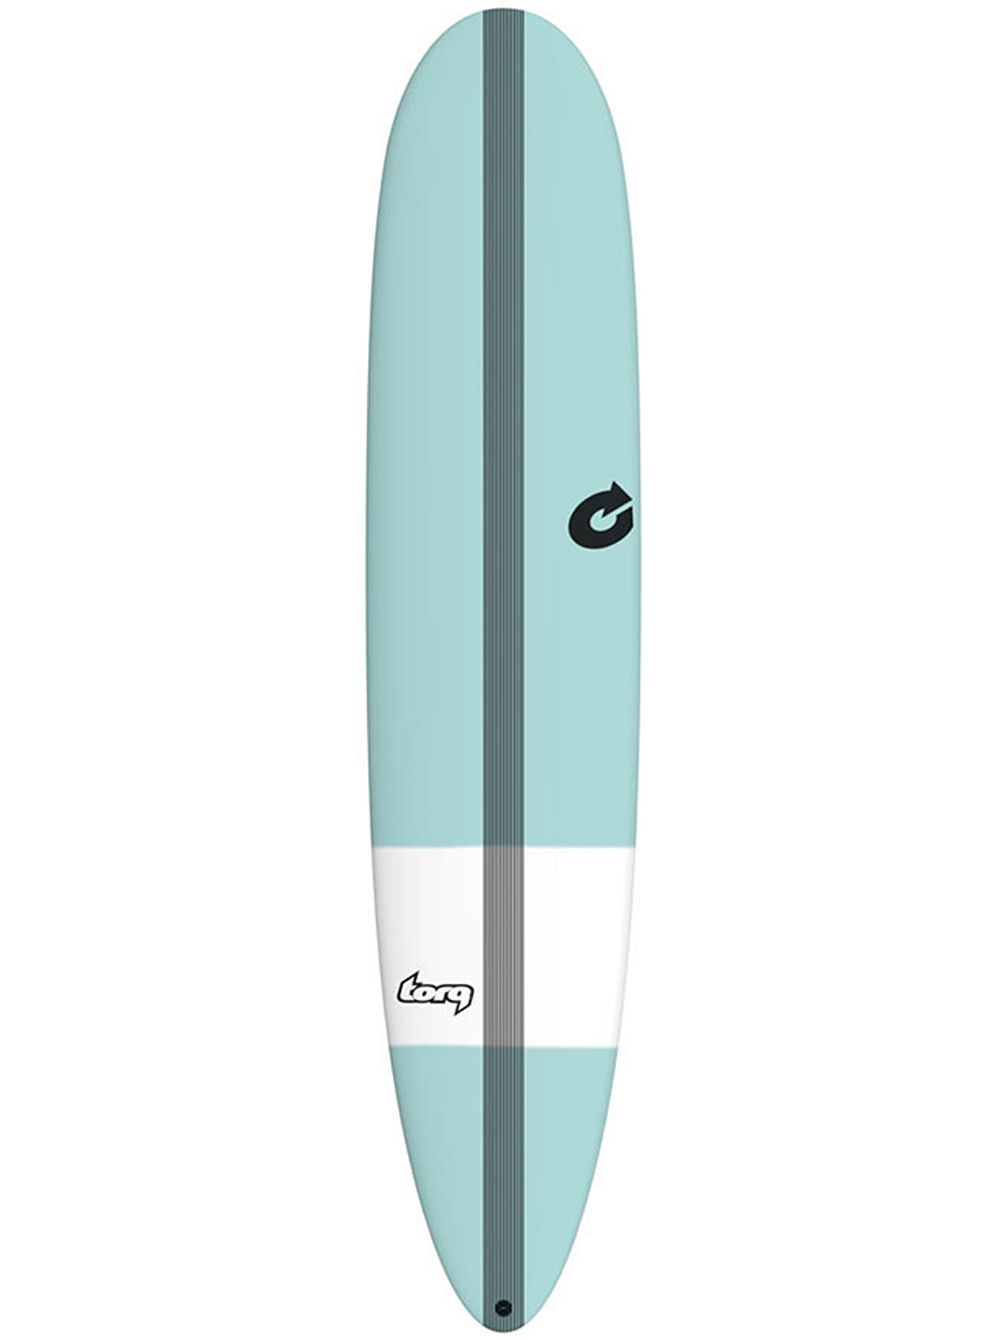 Epoxy Tec The Don 8'6 Surfboard